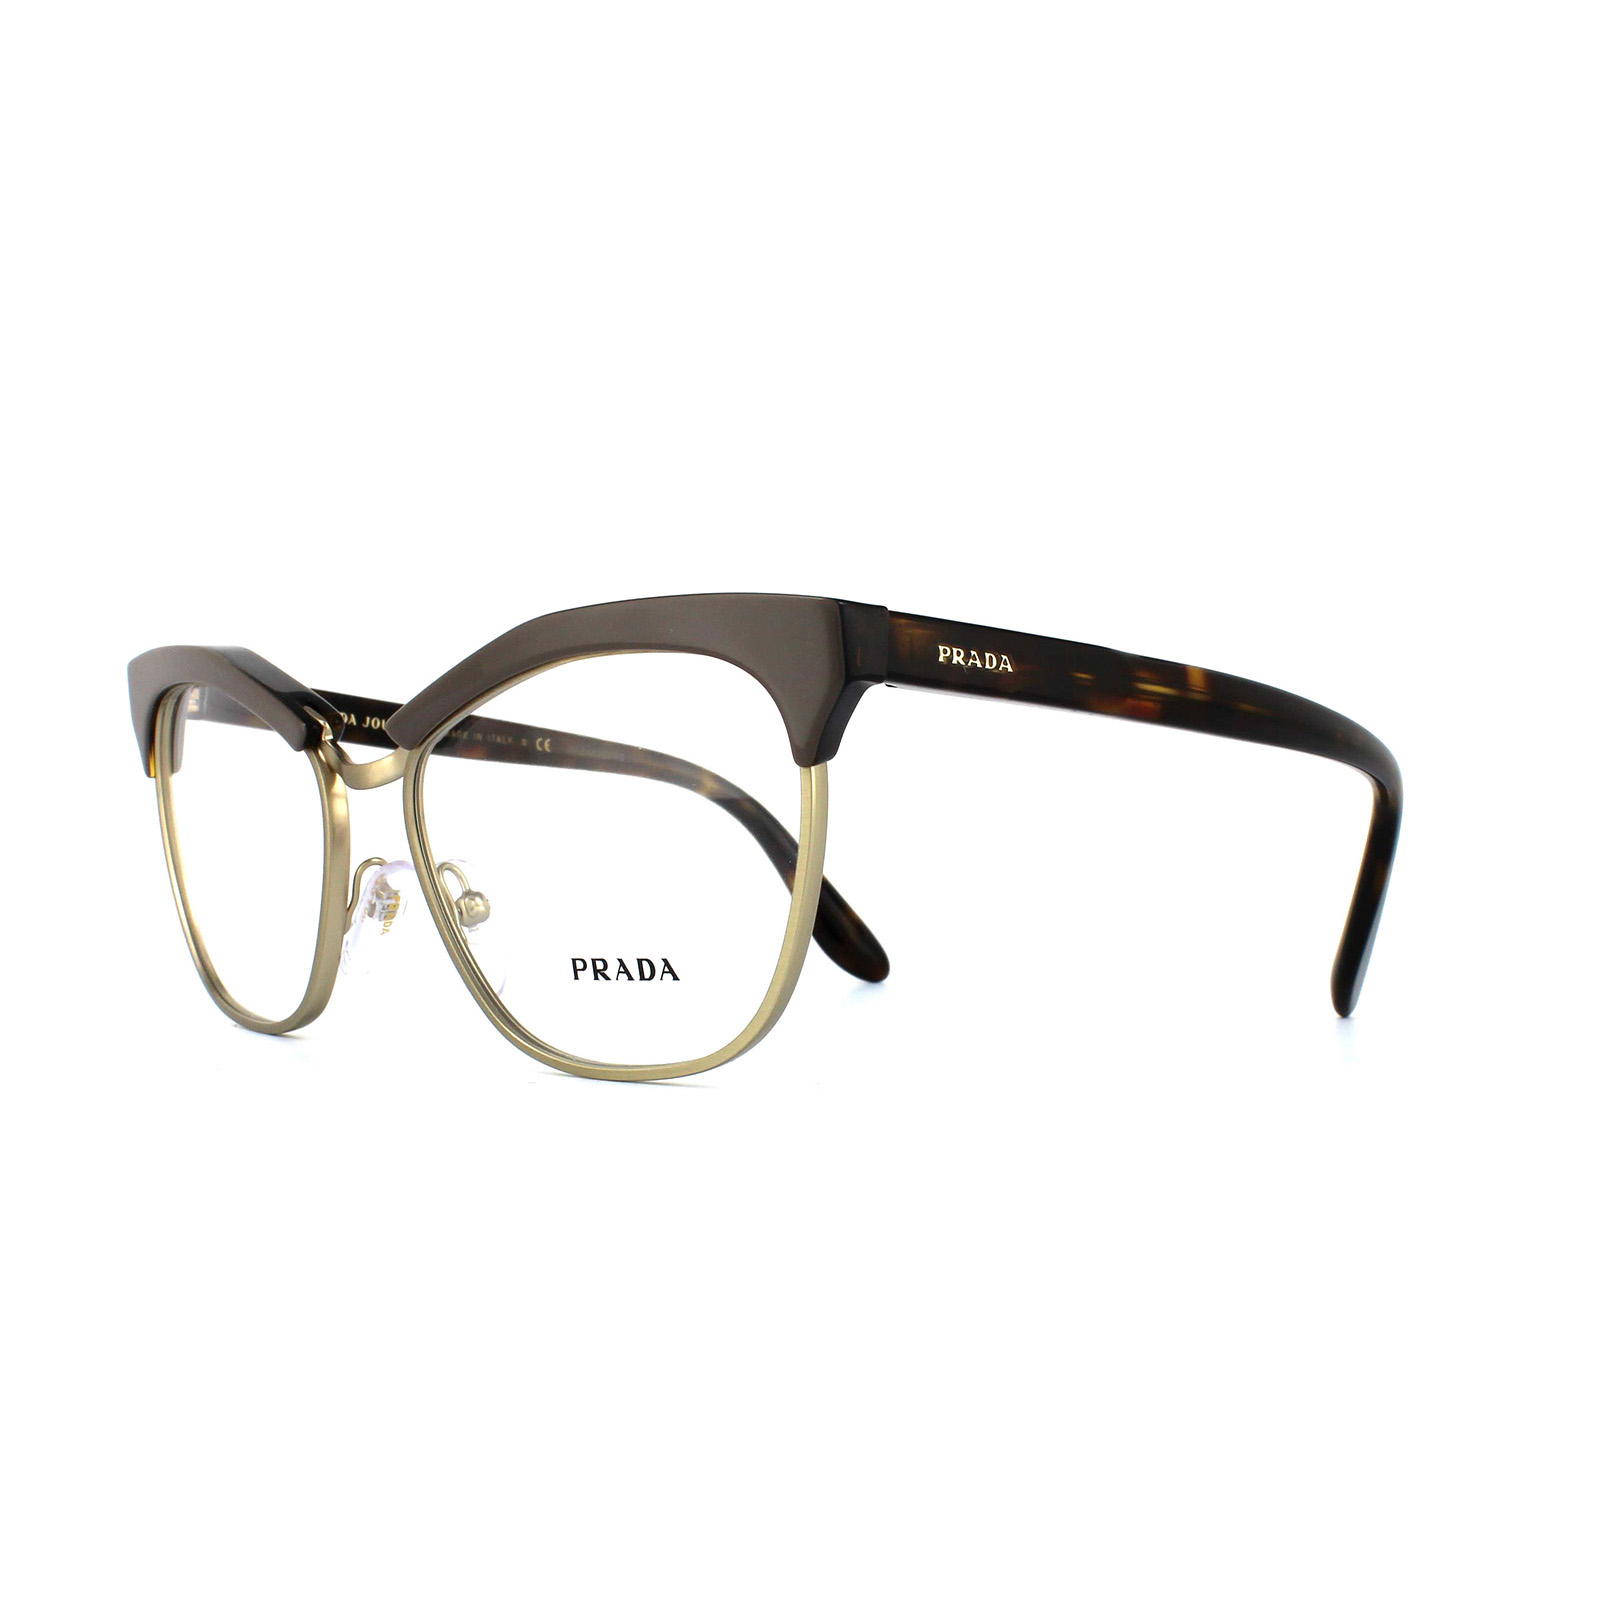 68908bf7640b Sentinel Prada Glasses Frames 14SV TFL1O1 Brown Havana Womens 55mm